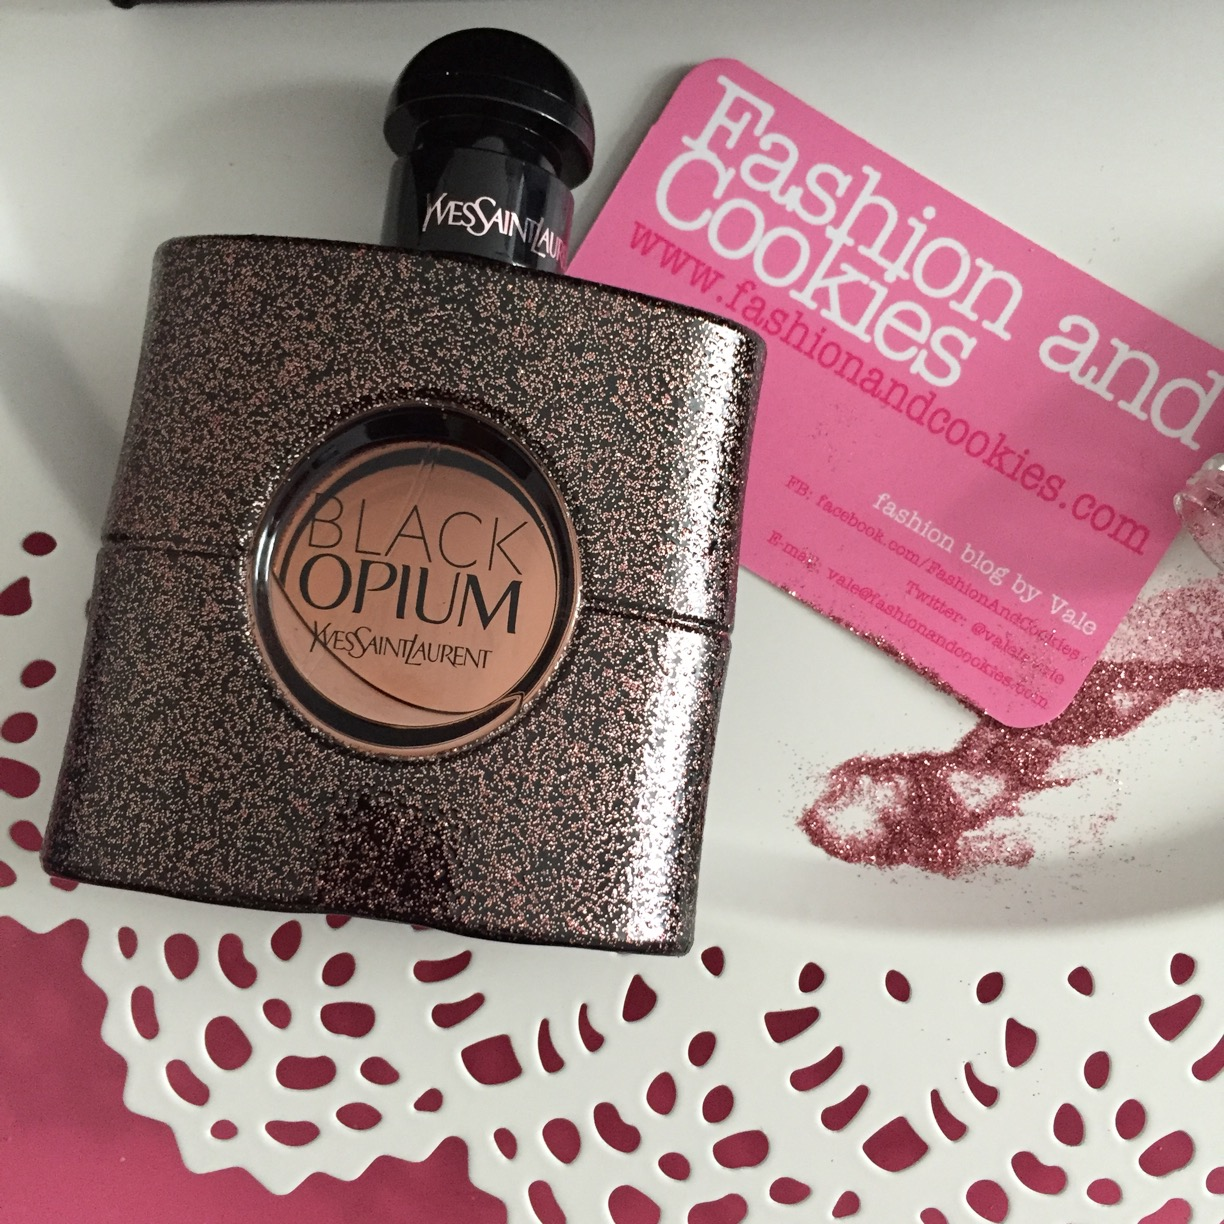 YSL Black Opium EDT review and presentation on Fashion and Cookies fashion and beauty blog